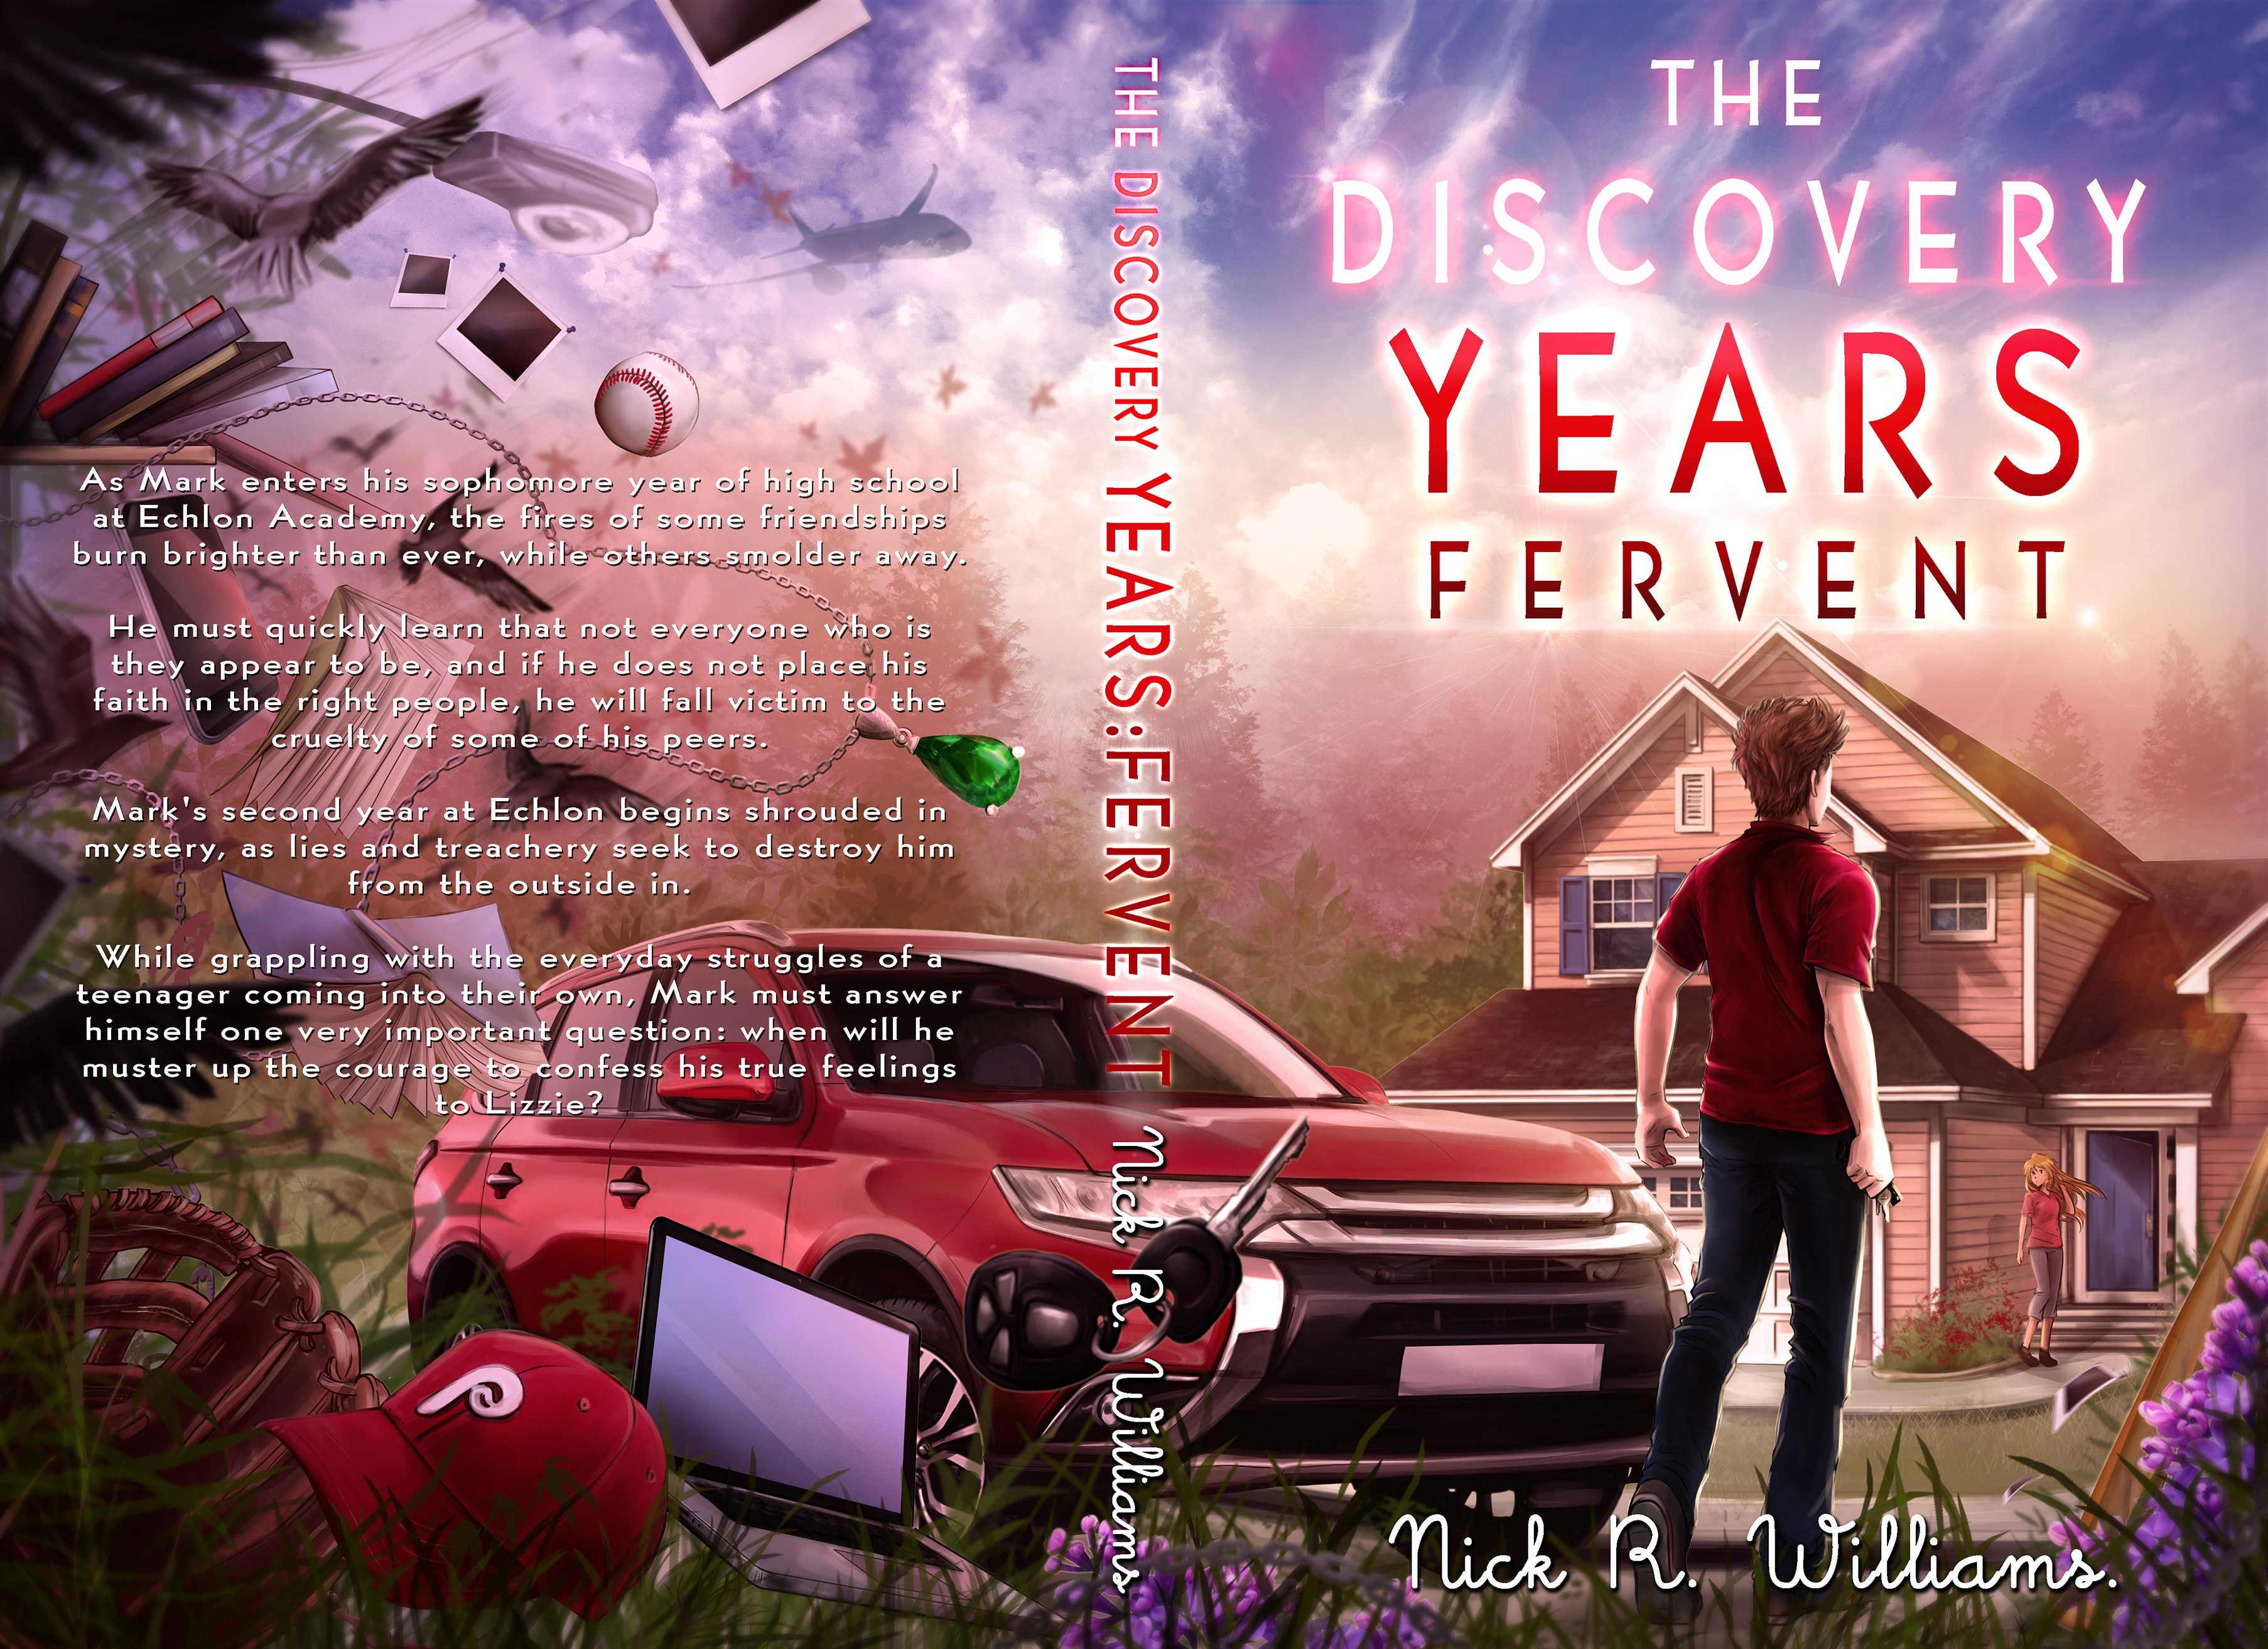 The Discovery Years: Fervent